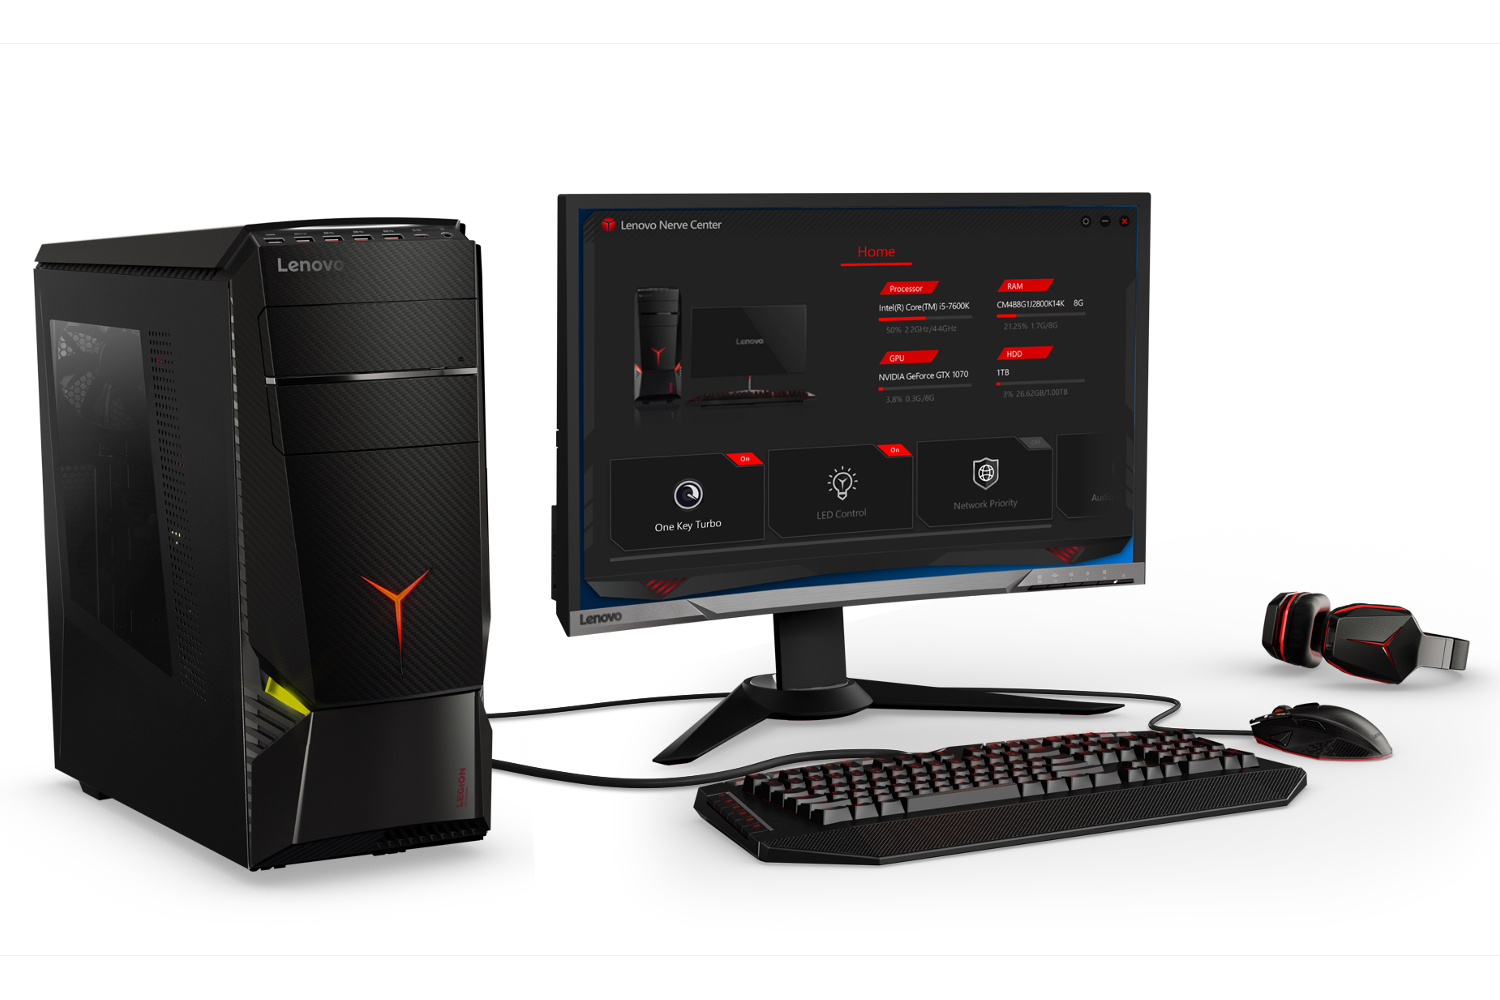 Desktops are dead Lenovo says no as it shoves new gaming